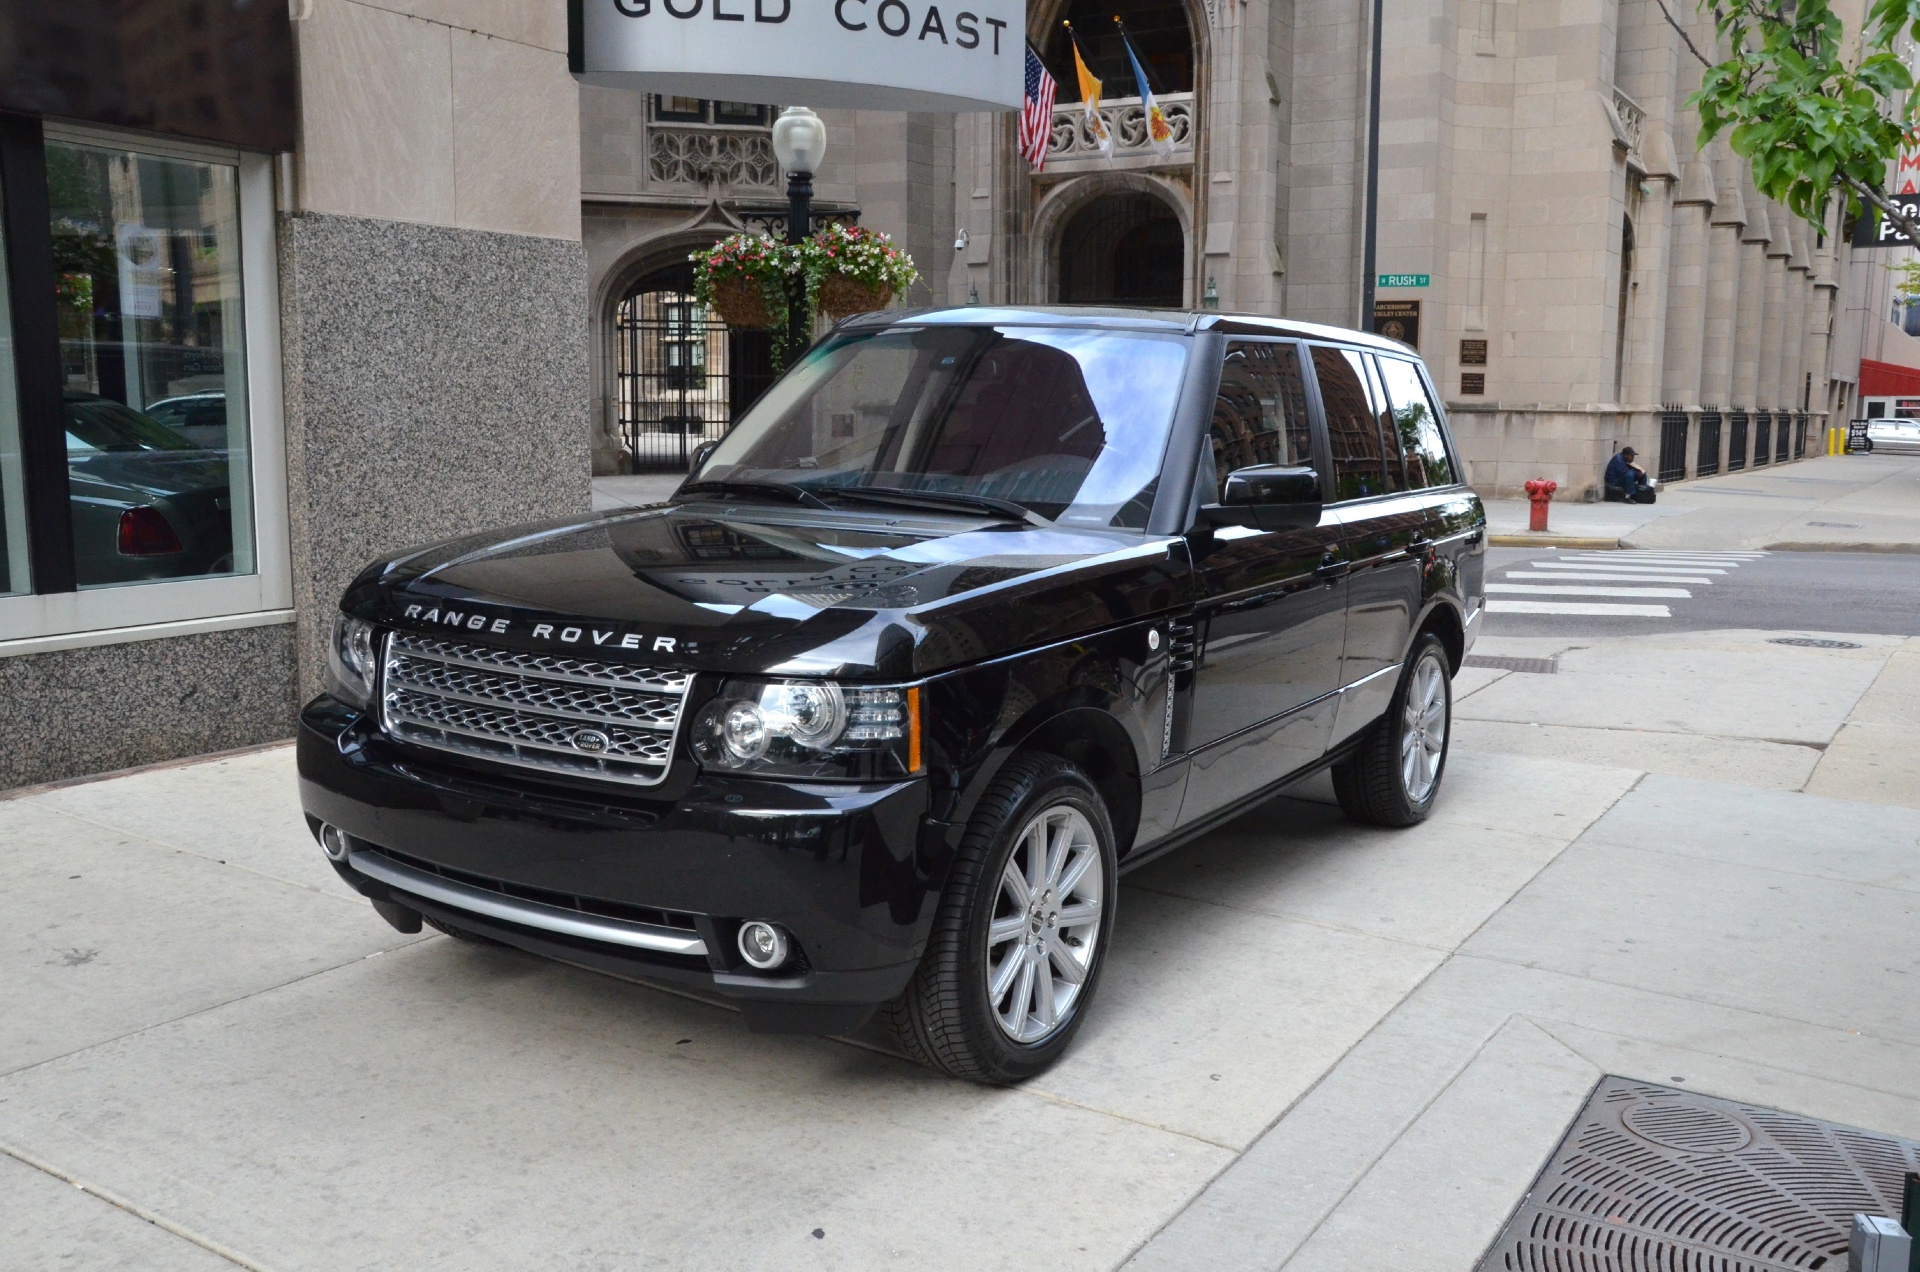 2012 Land Rover Range Rover Supercharged Stock GC1128 for sale